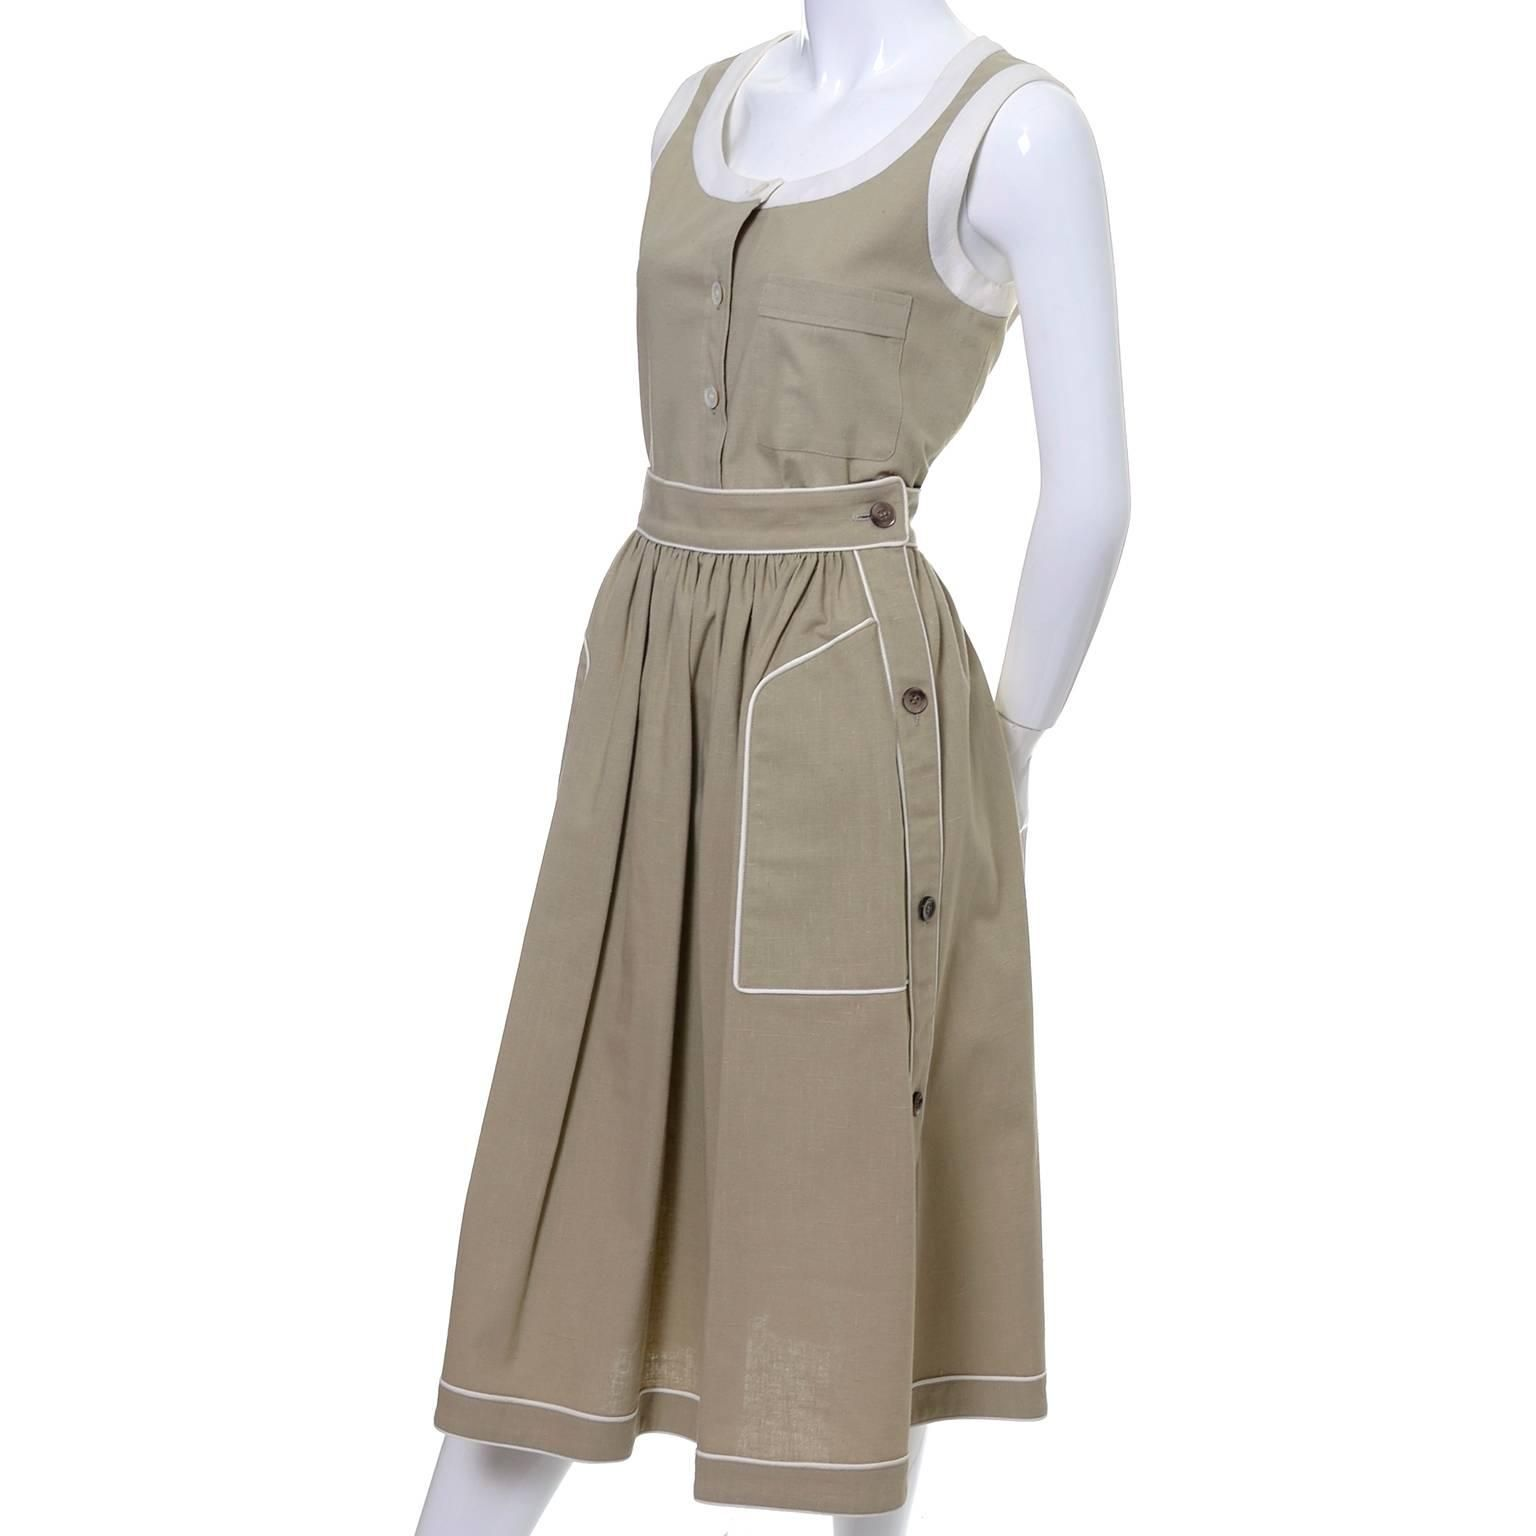 dad54017648 1970s Valentino Vintage 2pc Linen Dress Skirt Top Ensemble Made in France 6  For Sale at 1stdibs